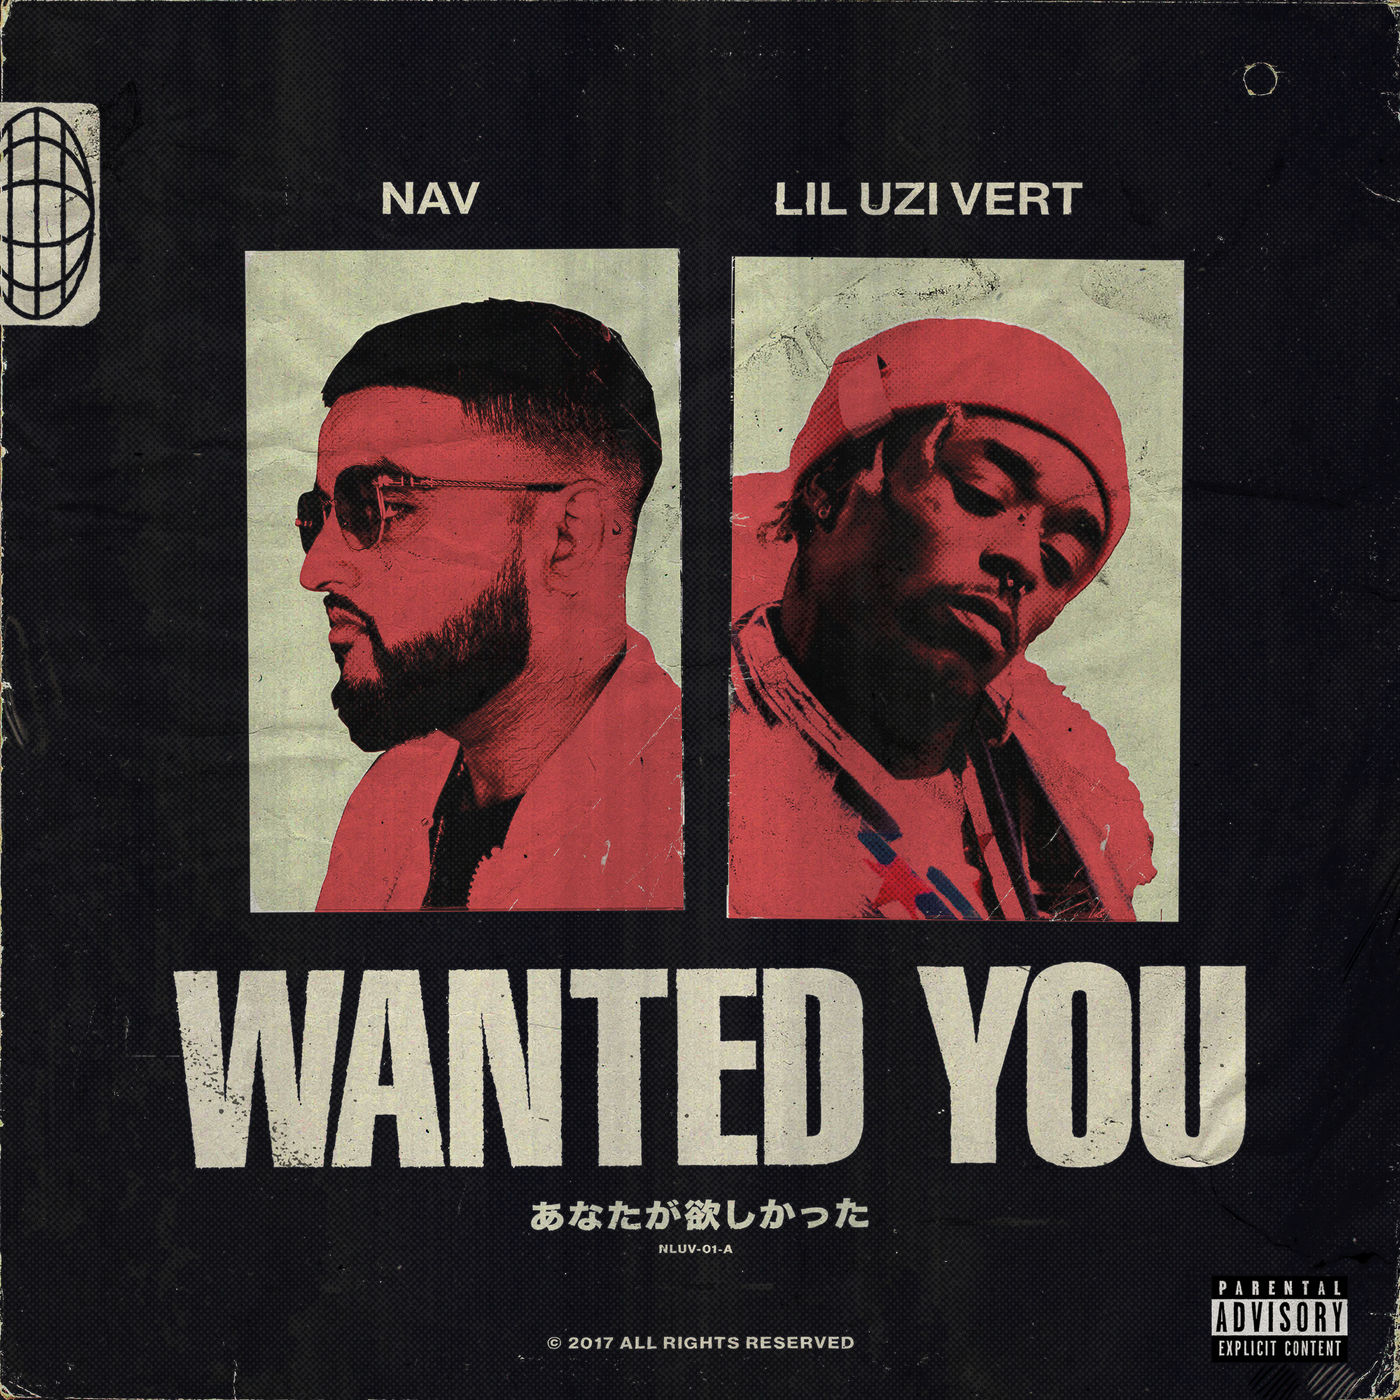 NAV - Wanted You (feat. Lil Uzi Vert) - Single Cover